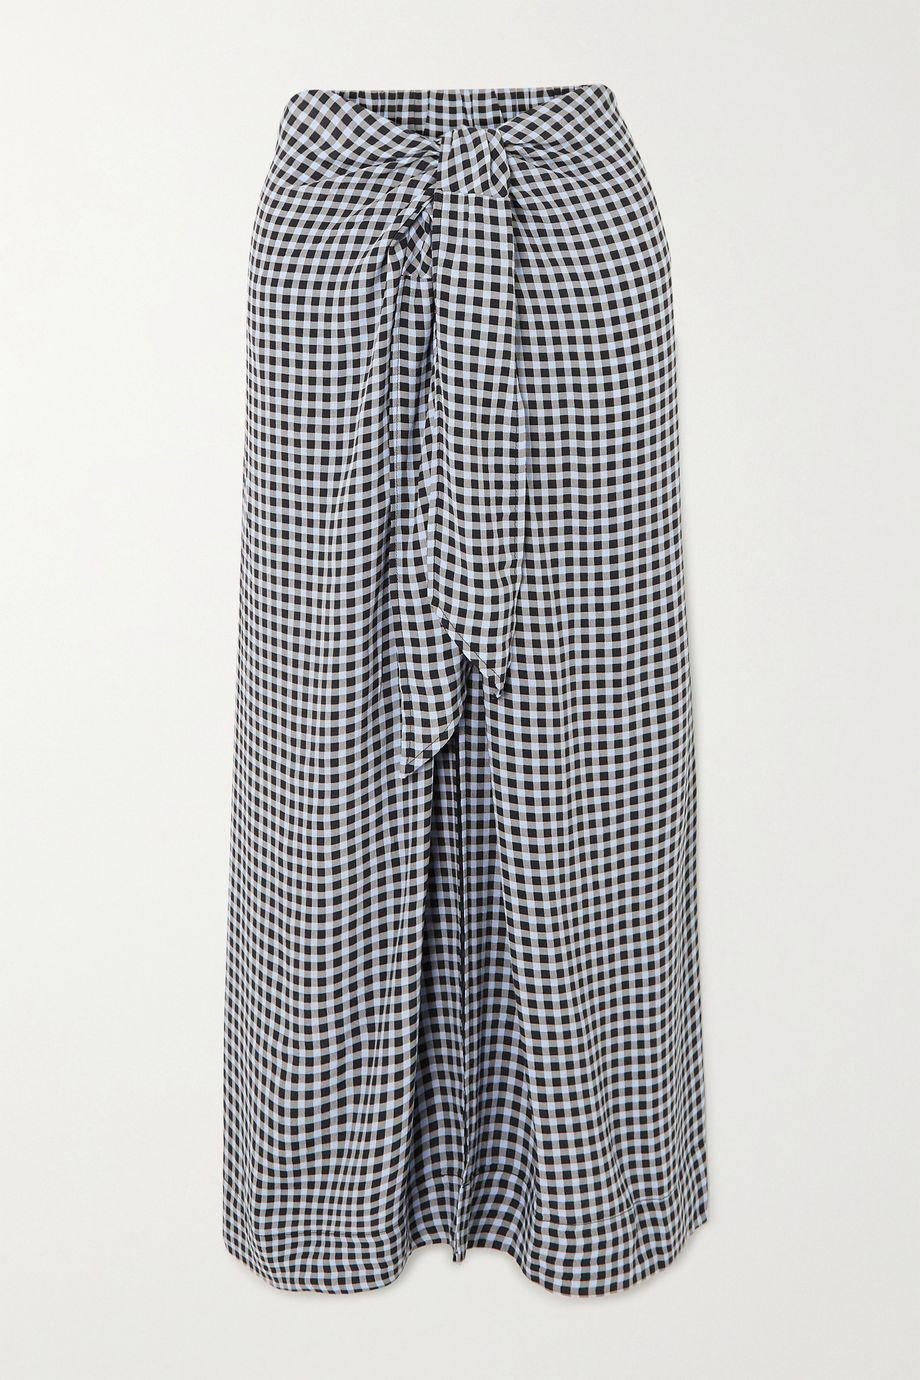 GANNI Tie-front checked crepe midi skirt